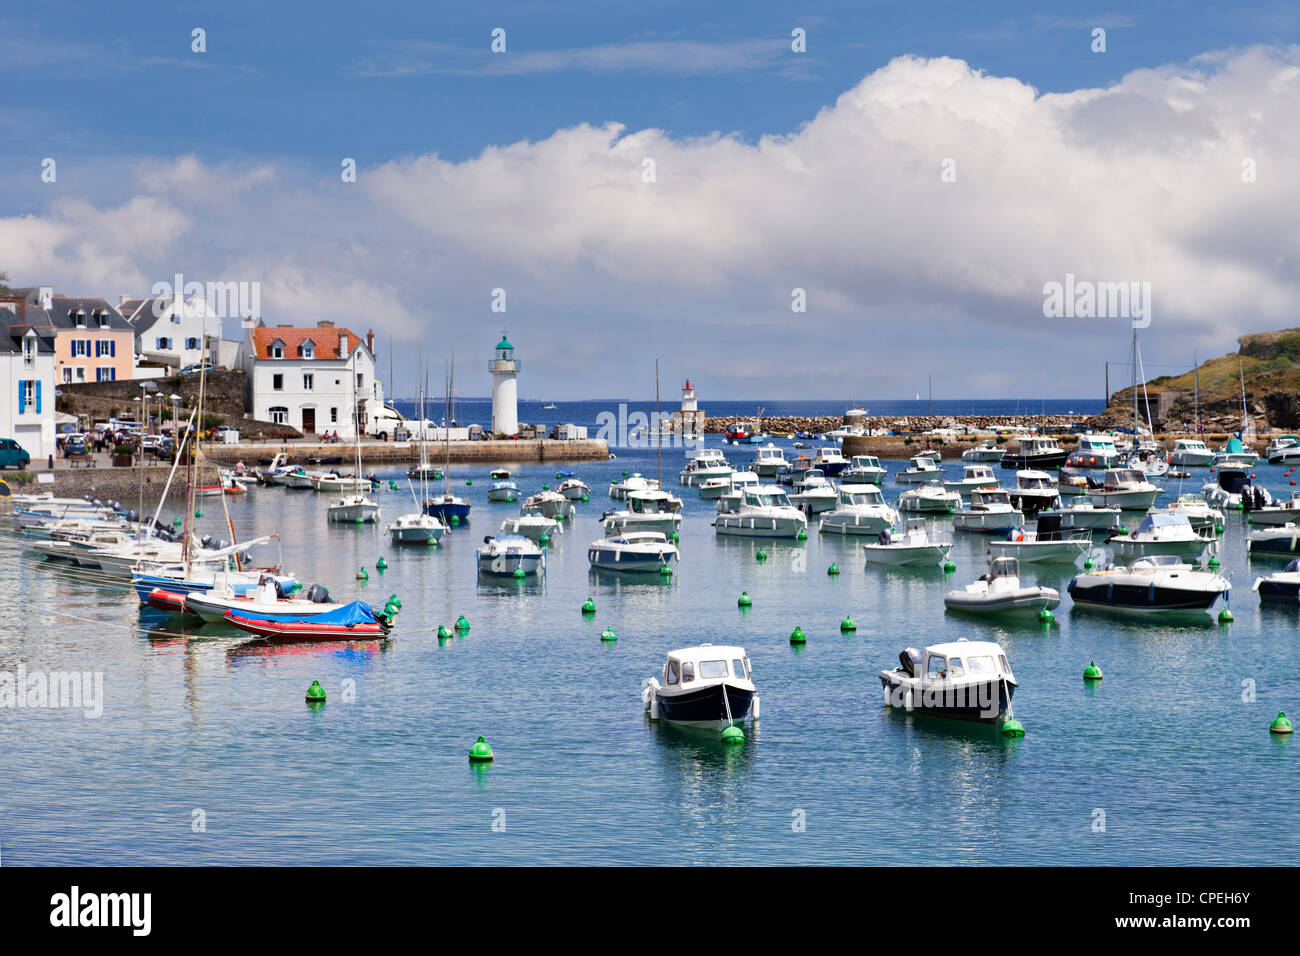 The small harbour at Sauzon, Belle-Ile, Brittany, France, on a bright summer day. - Stock Image